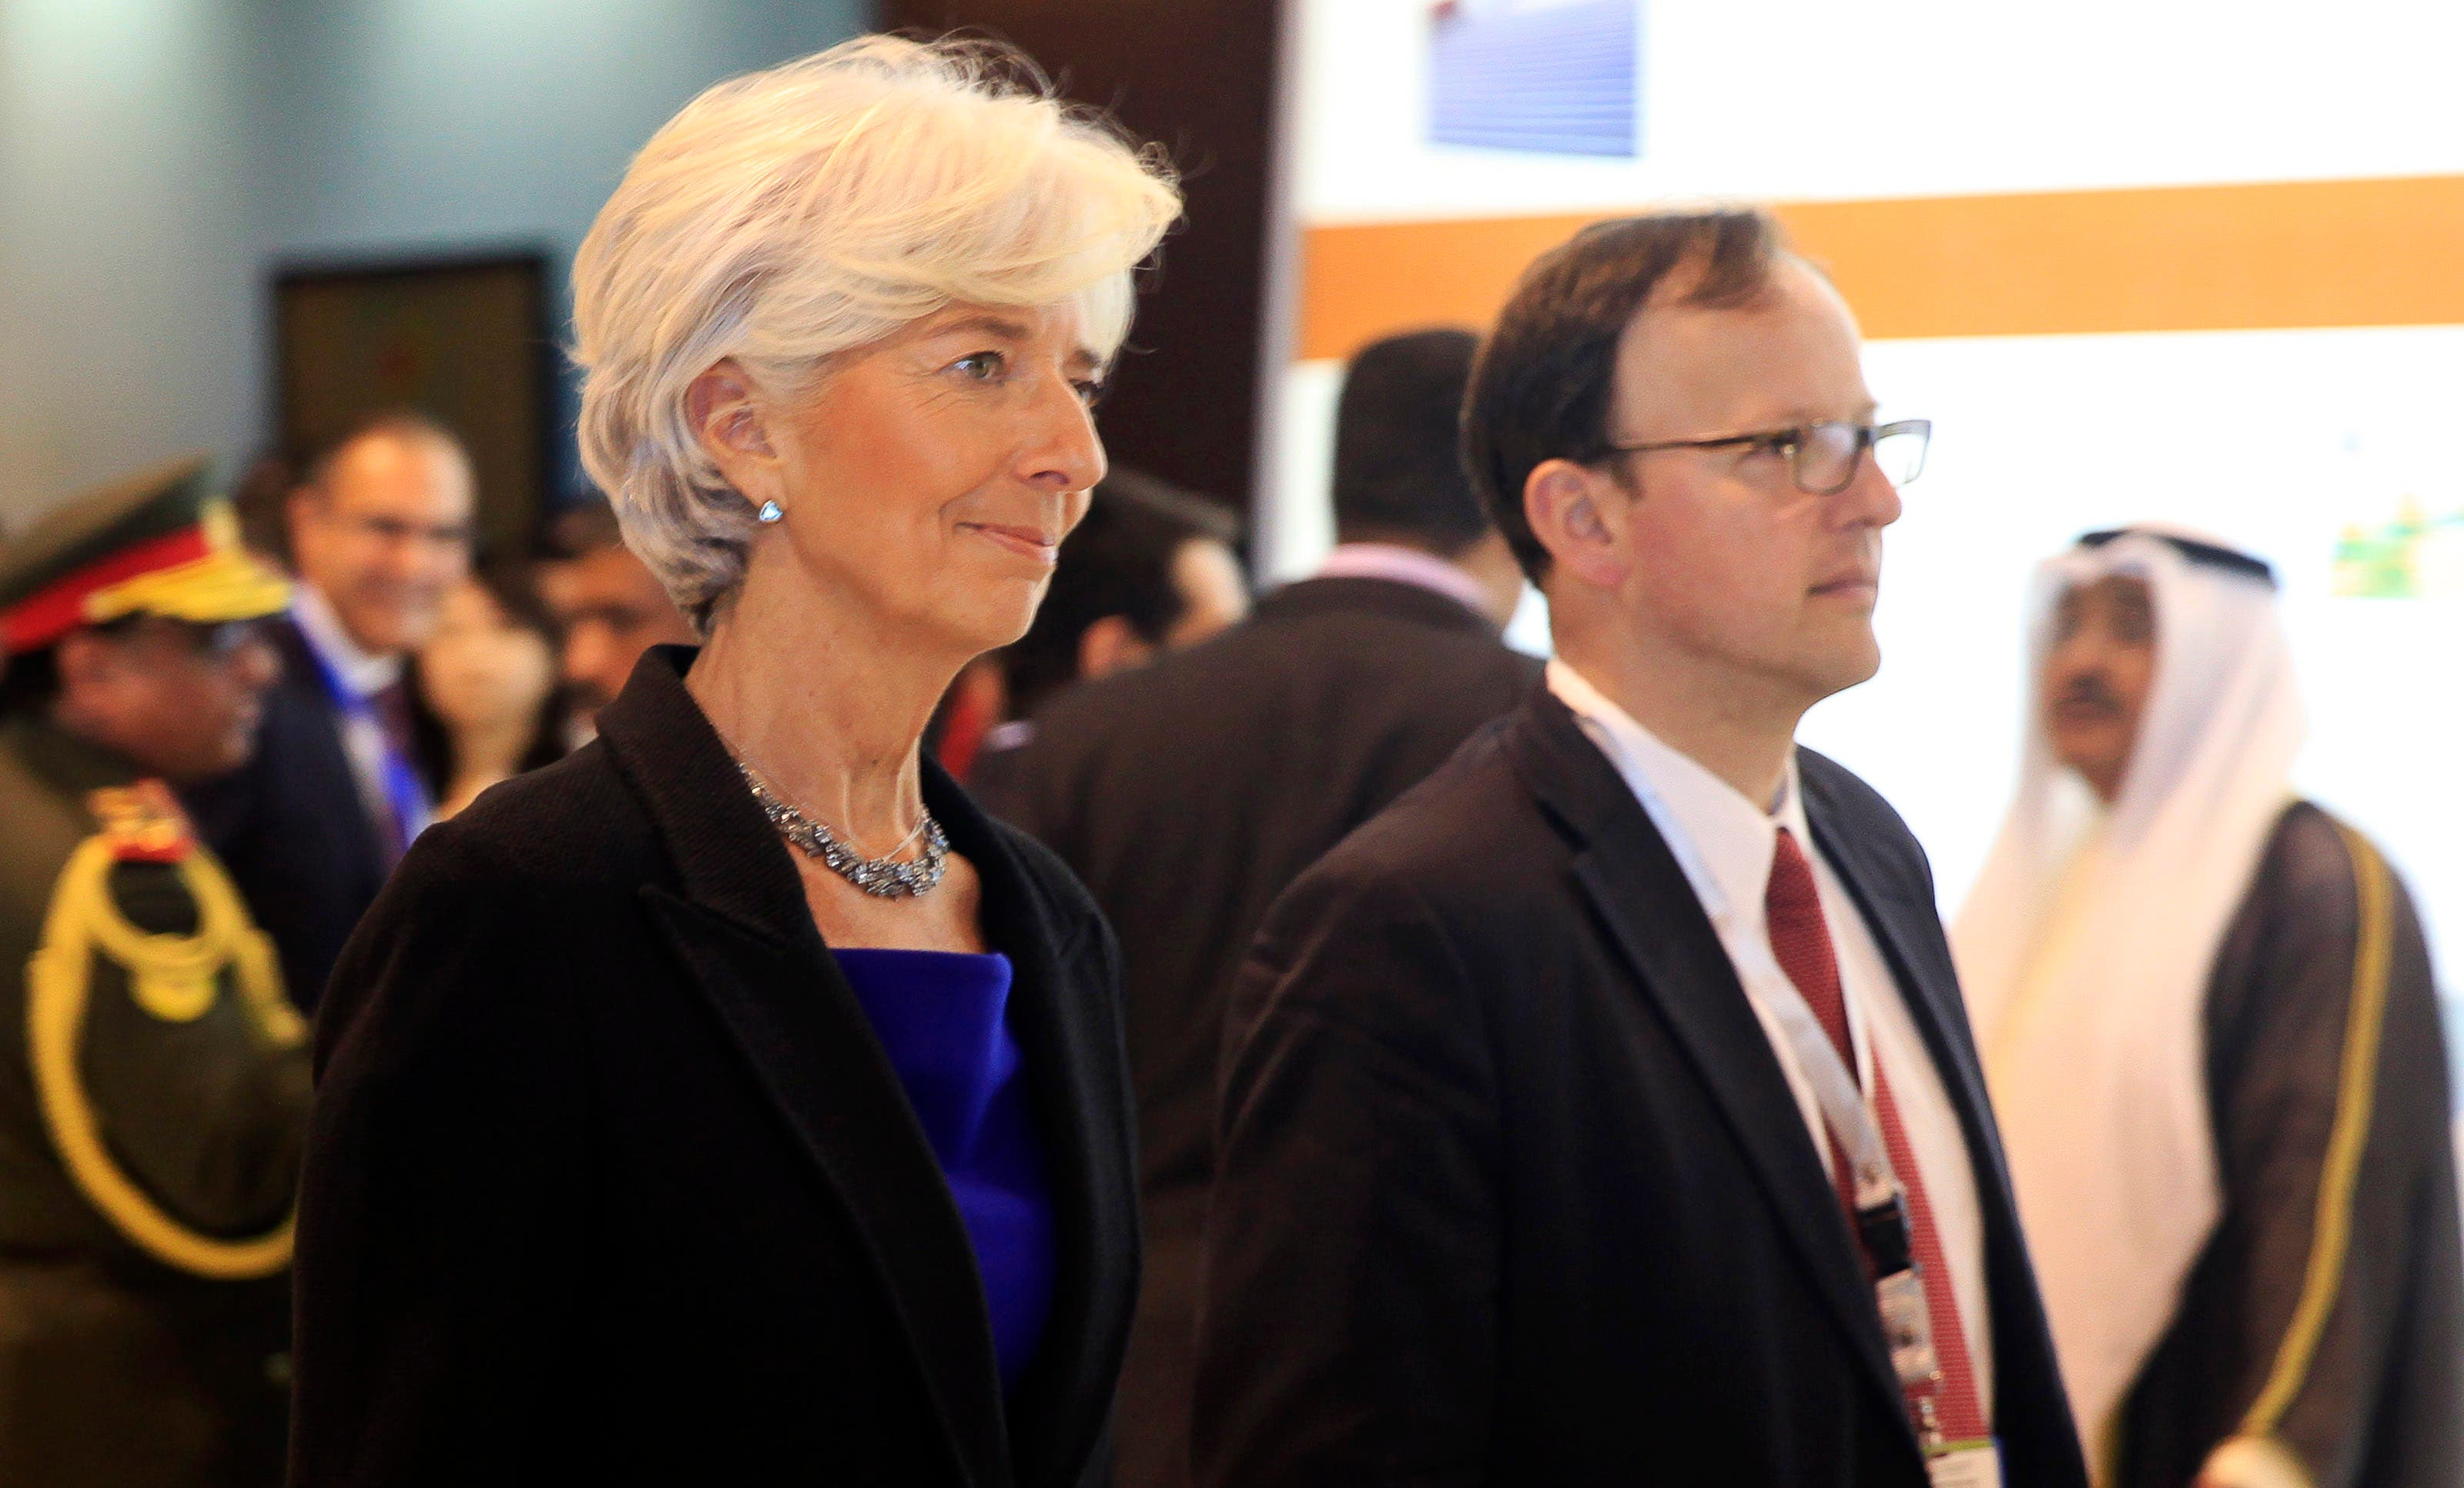 International Monetary Fund (IMF) Managing Director Christine Lagarde arrives for the opening of the Egypt Economic Development Conference (EEDC) in Sharm el-Sheikh, in the South Sinai governorate, about 550 km (342 miles) south of Cairo, March 13, 2015. (Reuters)